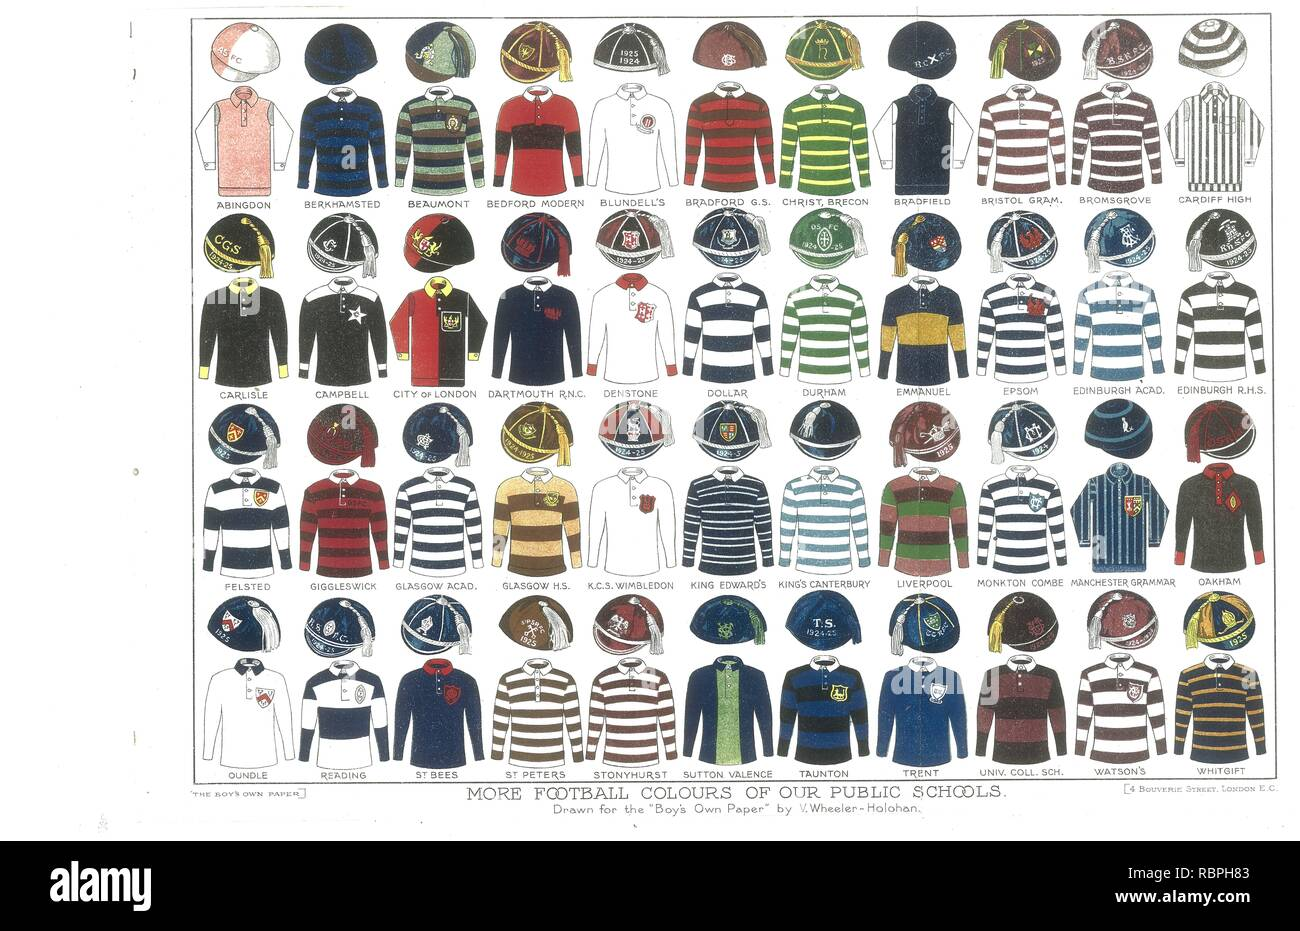 Fold out illustration for the Boys Own Paper of Football colours of Public Schools 1926 Stock Photo